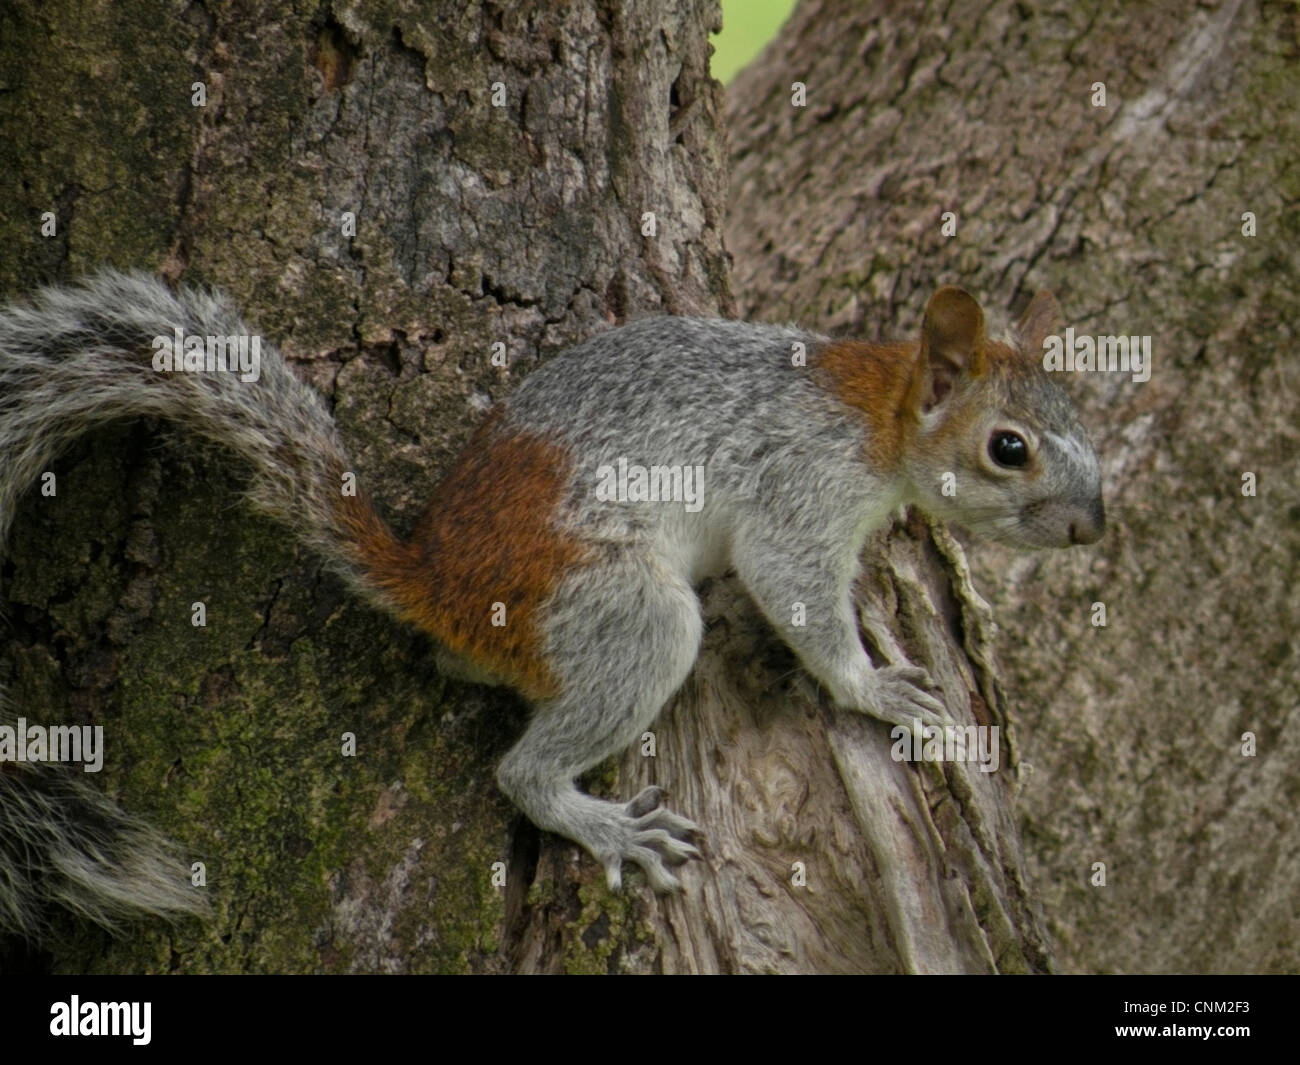 Mexican Squirrel (Sciuridae) Southwestern Pacific Coast of Mexico, State of Guerrero. - Stock Image